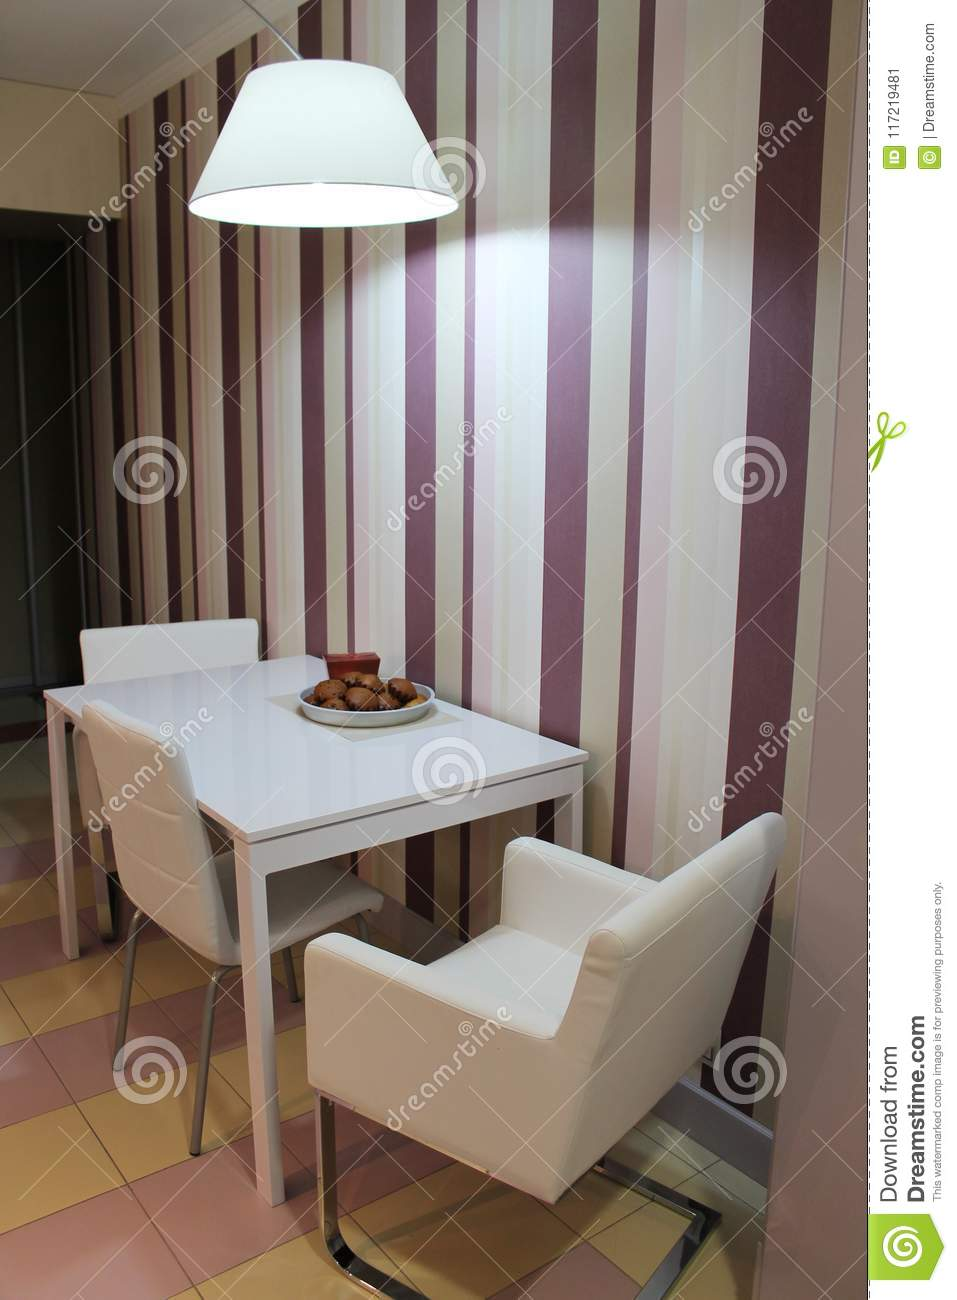 Picture of: Modern Large Lamp Hanging Over The Dining Table In The Kitchen Stock Image Image Of Cuisine Furnishings 117219481